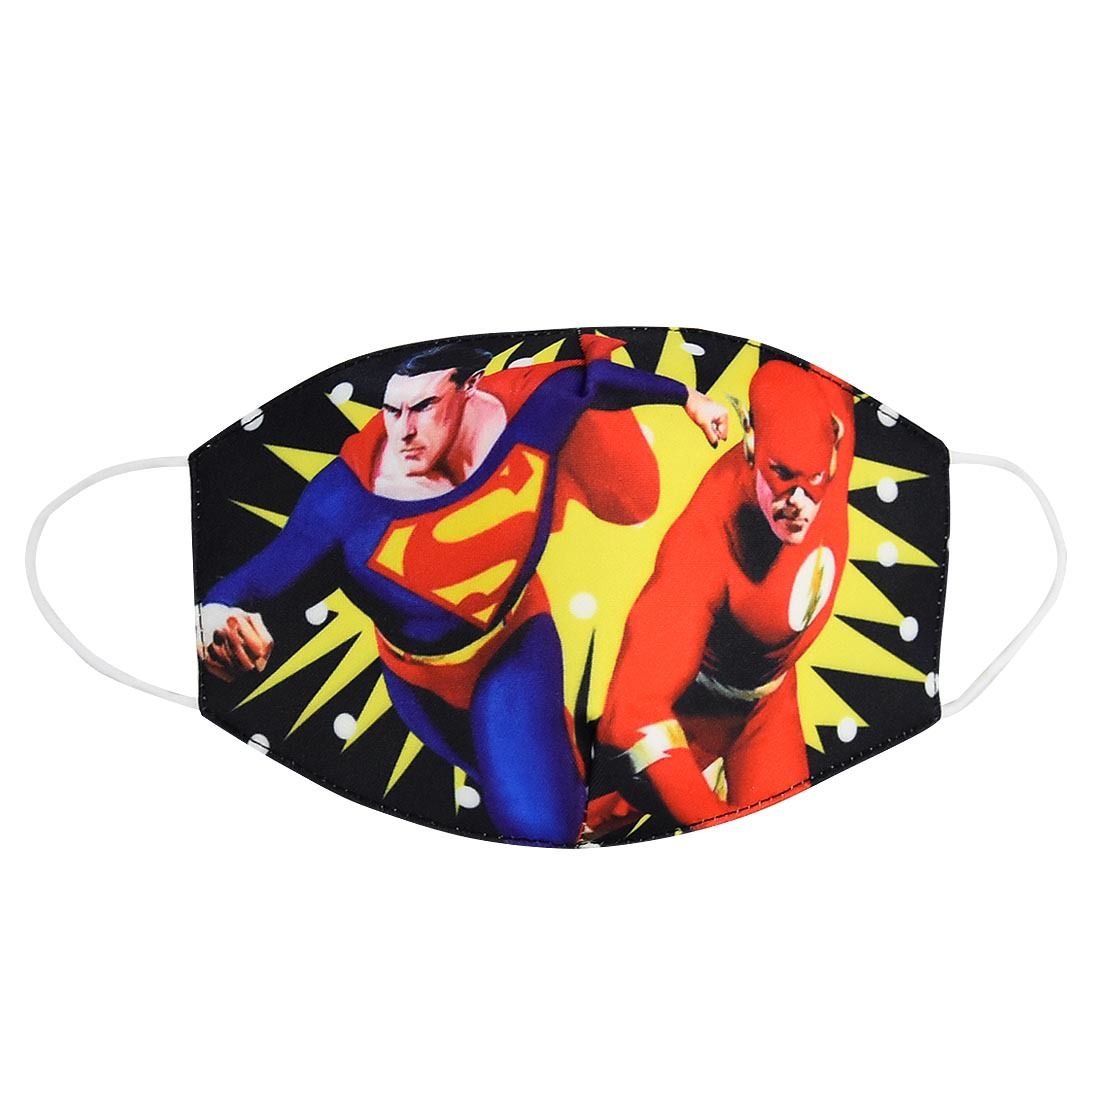 Cartoon Printed Children Printed Mask With Ice Silk Cotton Mask For Kids 5